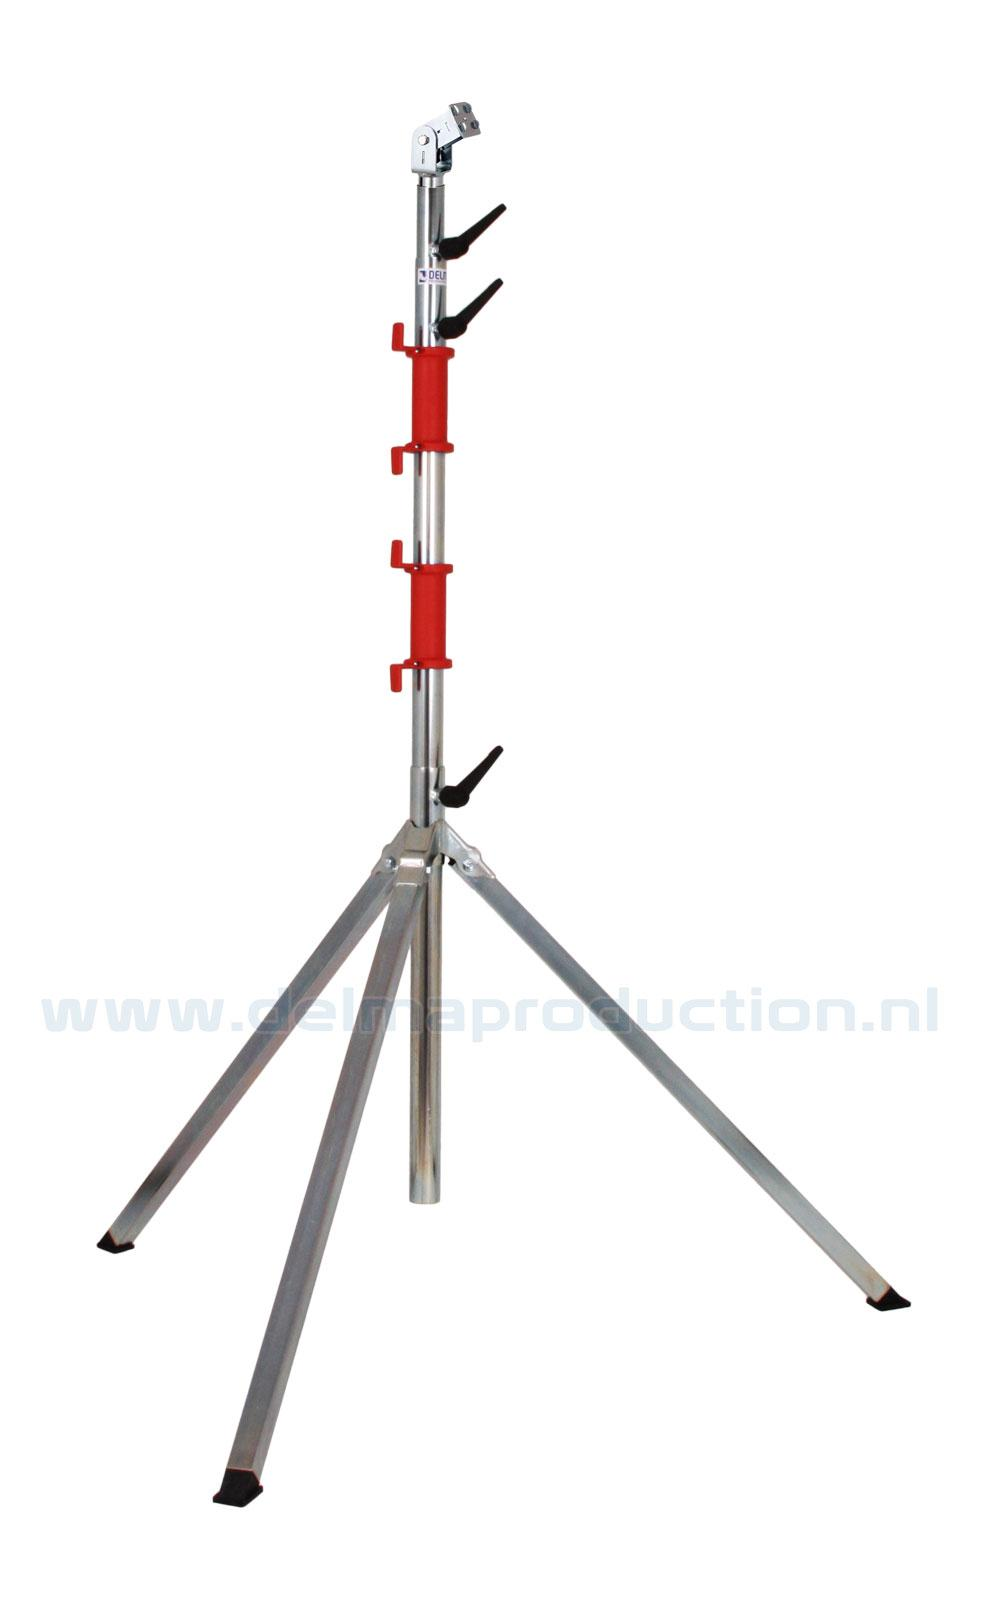 Tripod worklight stand 4-part, quick release system